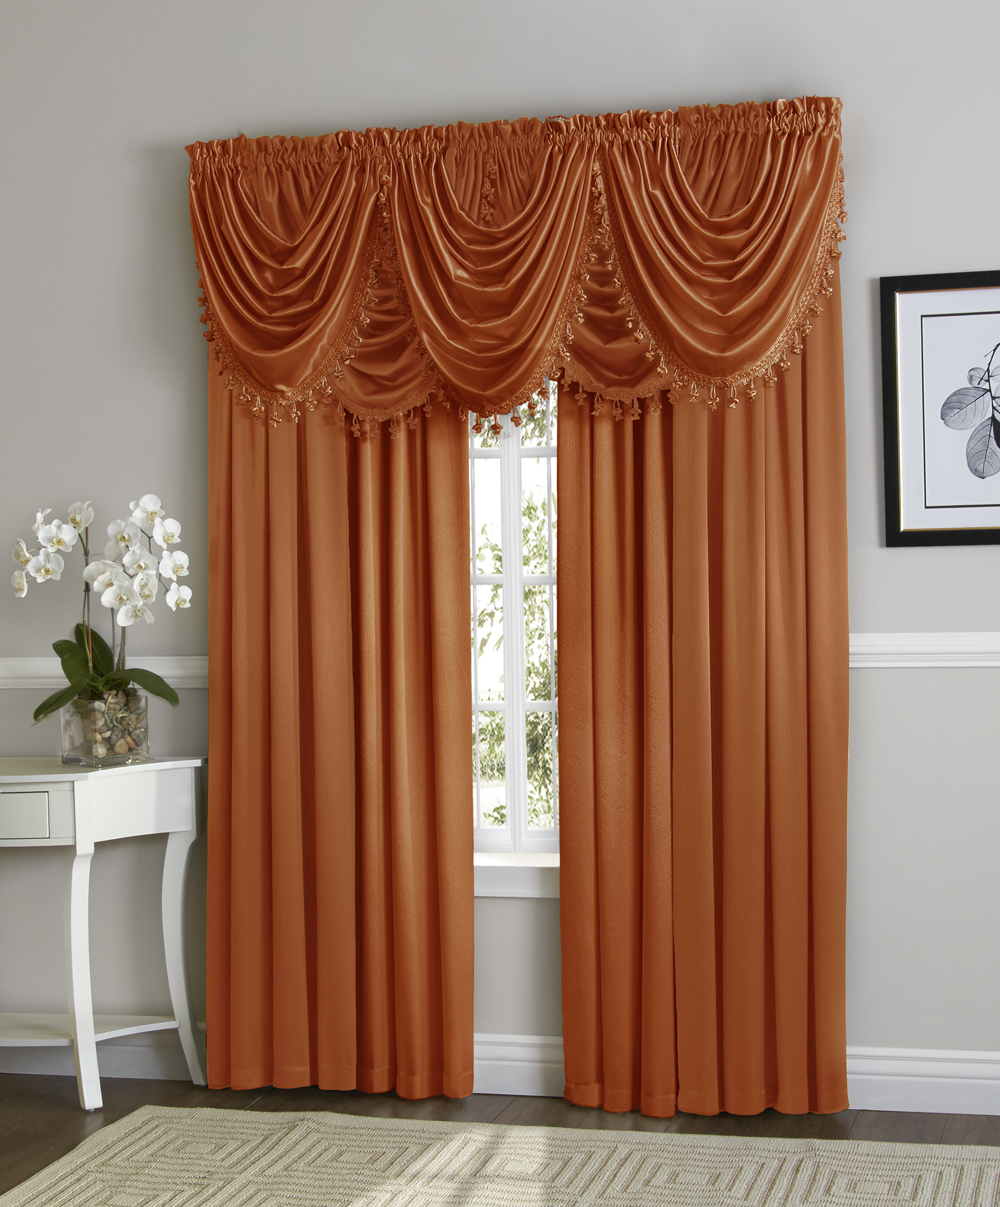 Hyatt Window Curtain & Fringed Valance Complete 9 Piece Window Treatment Set Spice by